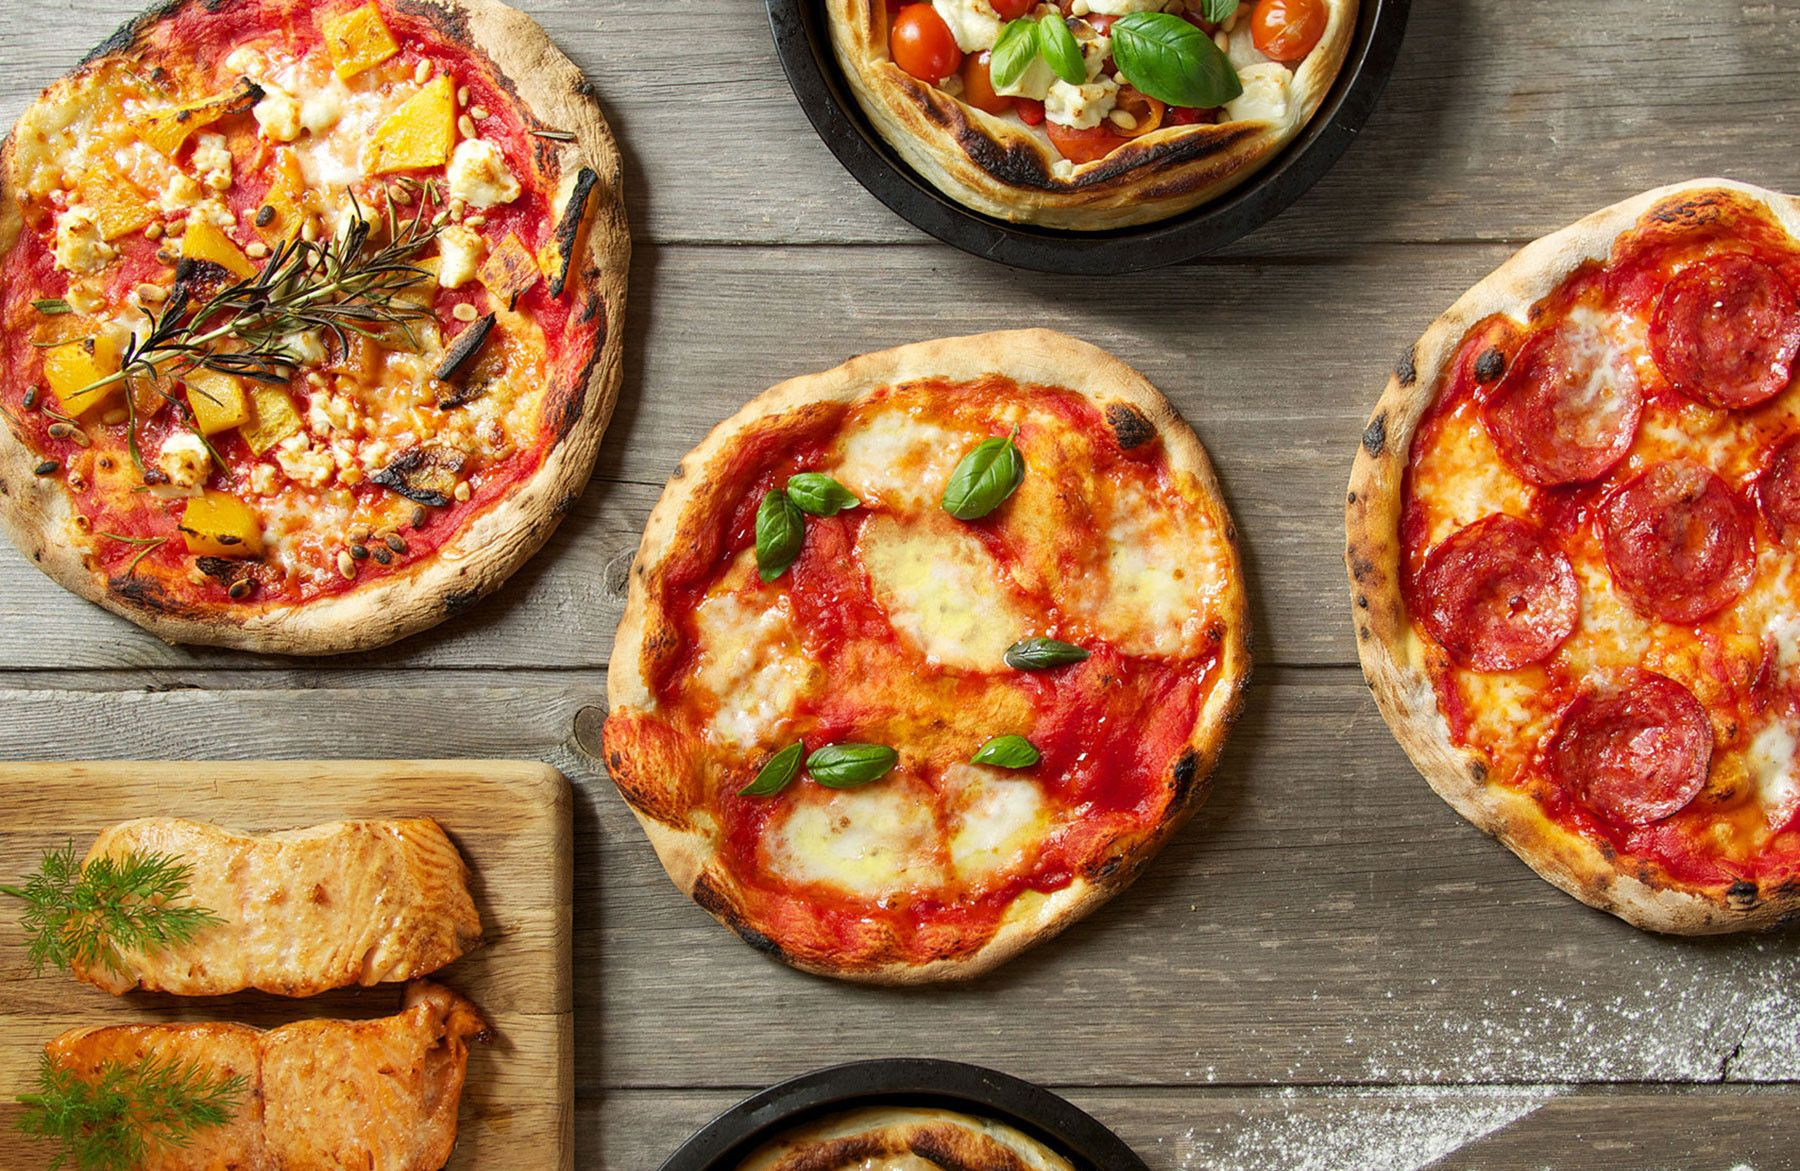 If Anything Deserves Its Own Festival, It's Pizza: London's new Pizza Festival is going to be every foodie's dream come true.